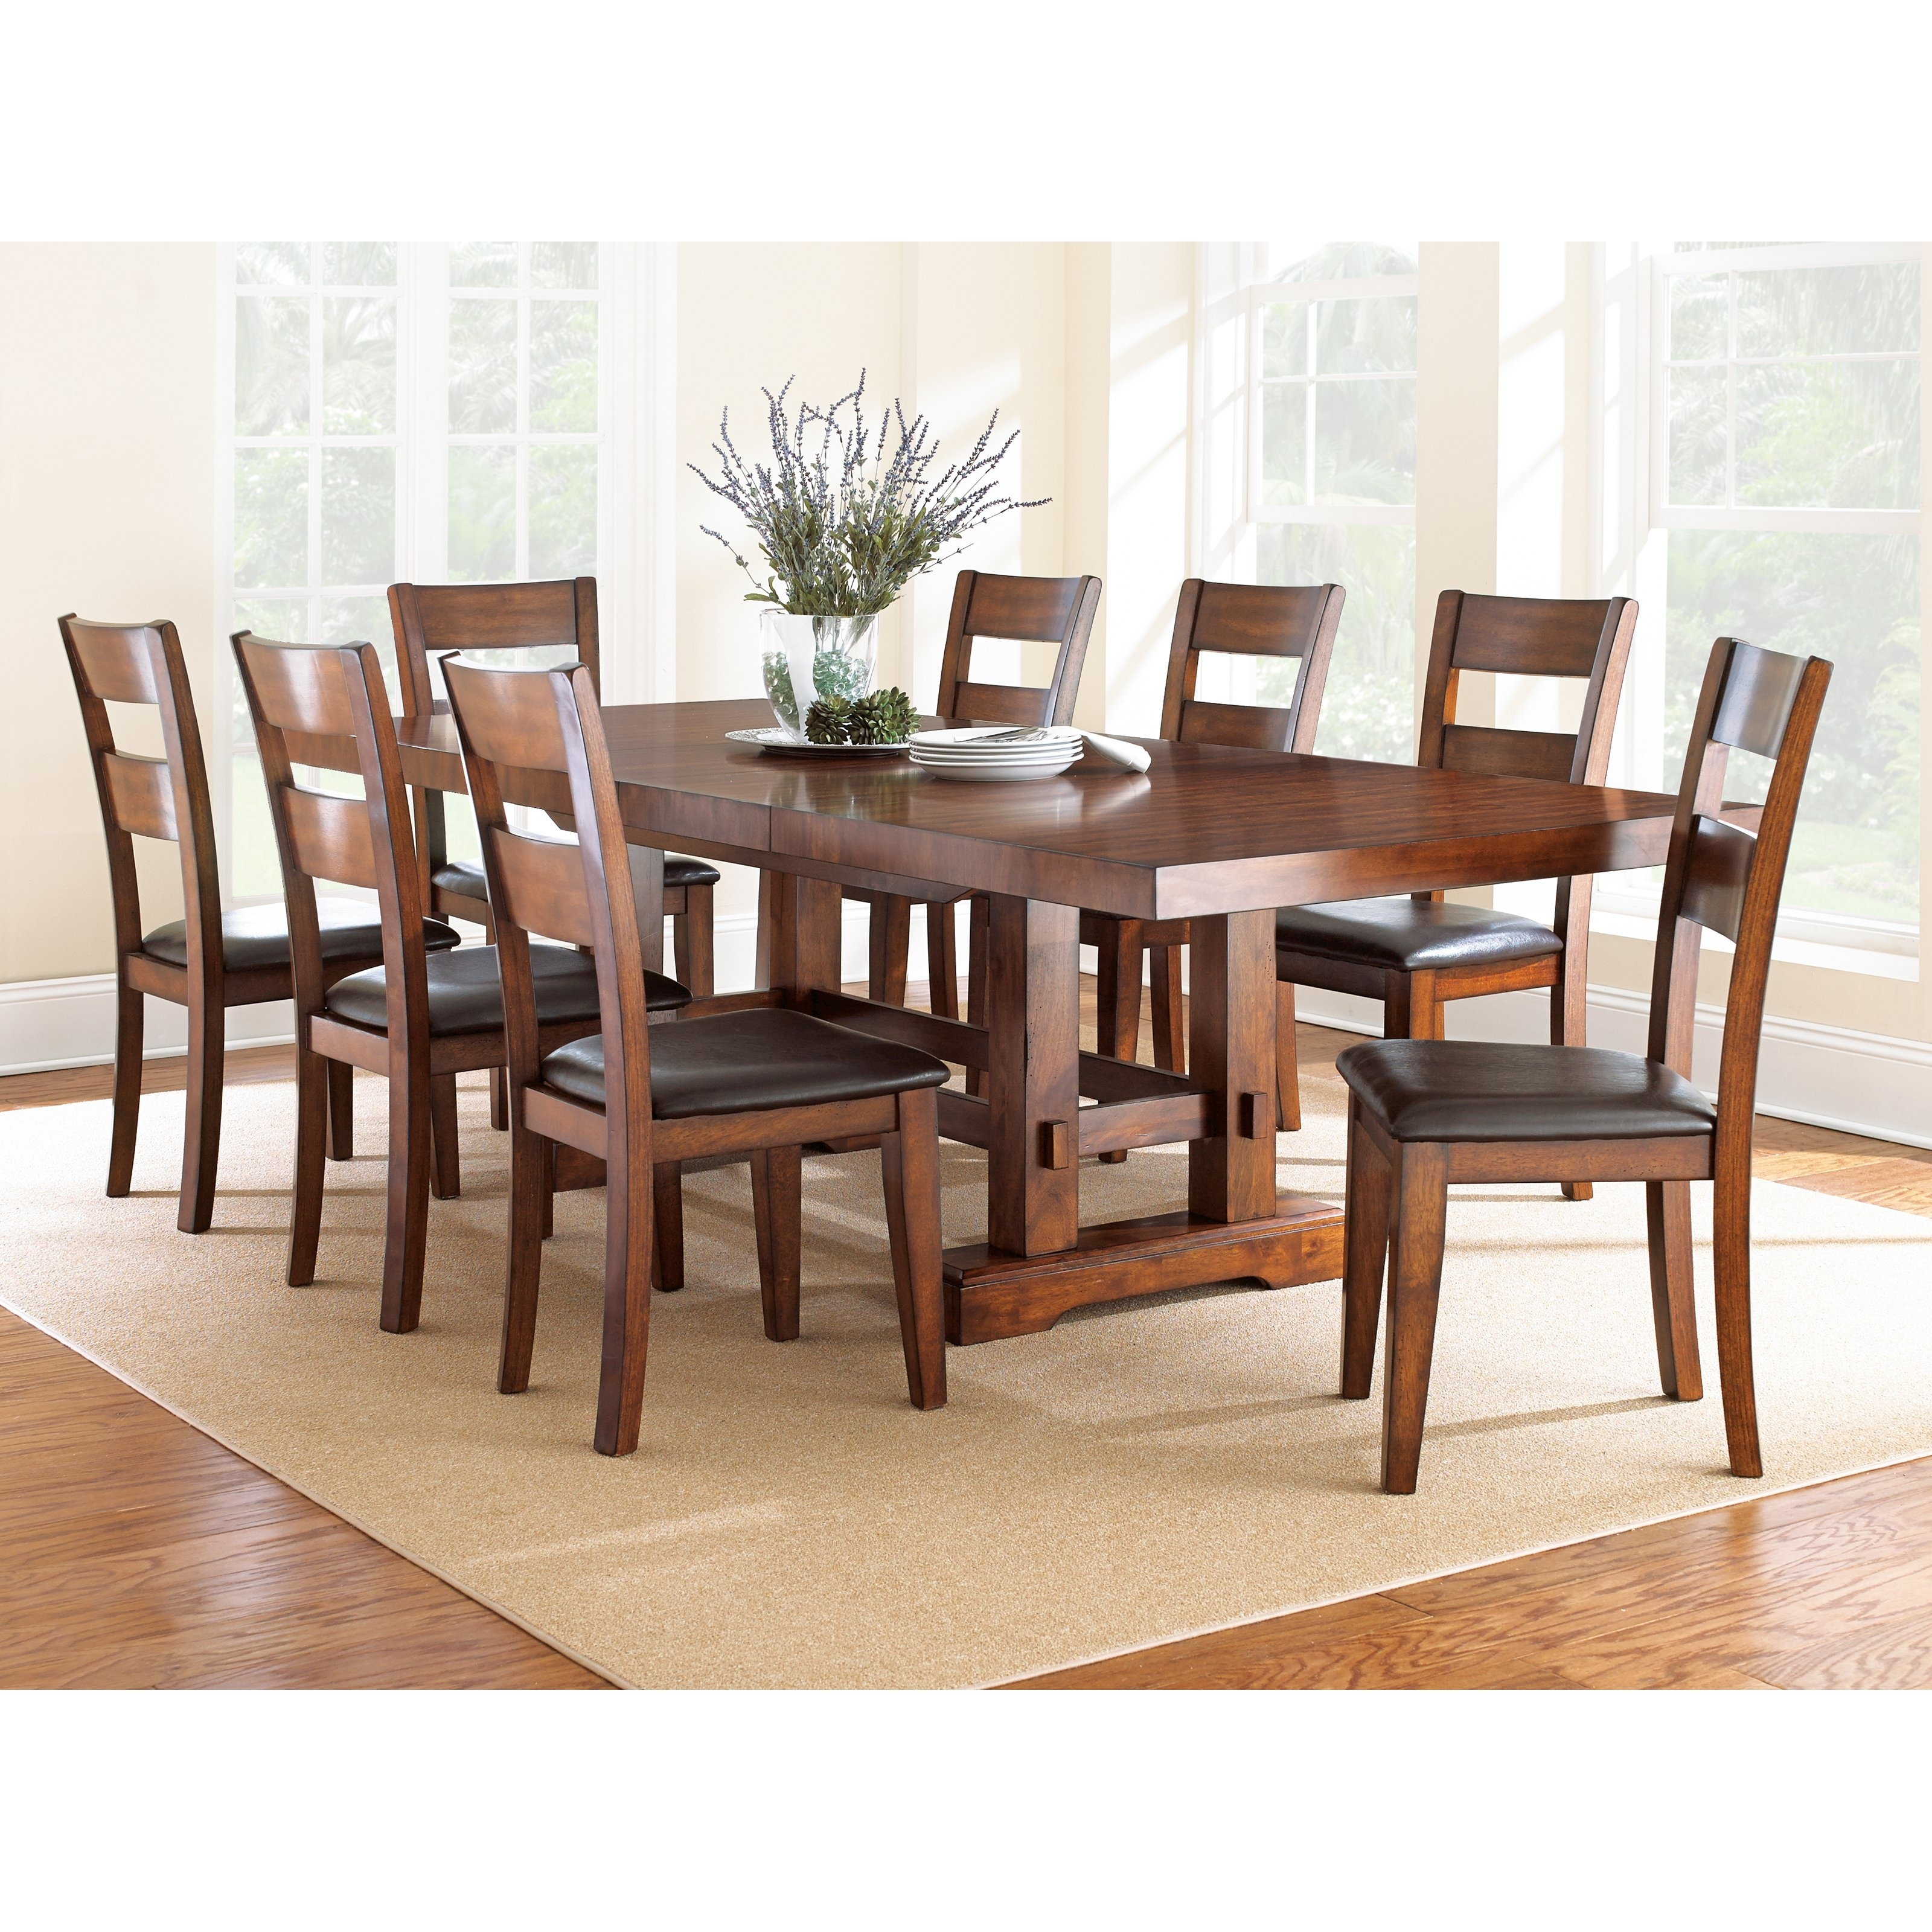 Steve Silver Zappa 9 Piece Dining Table Set Medium Matching Bar Throughout Well Known Dining Tables And 8 Chairs Sets (View 20 of 25)